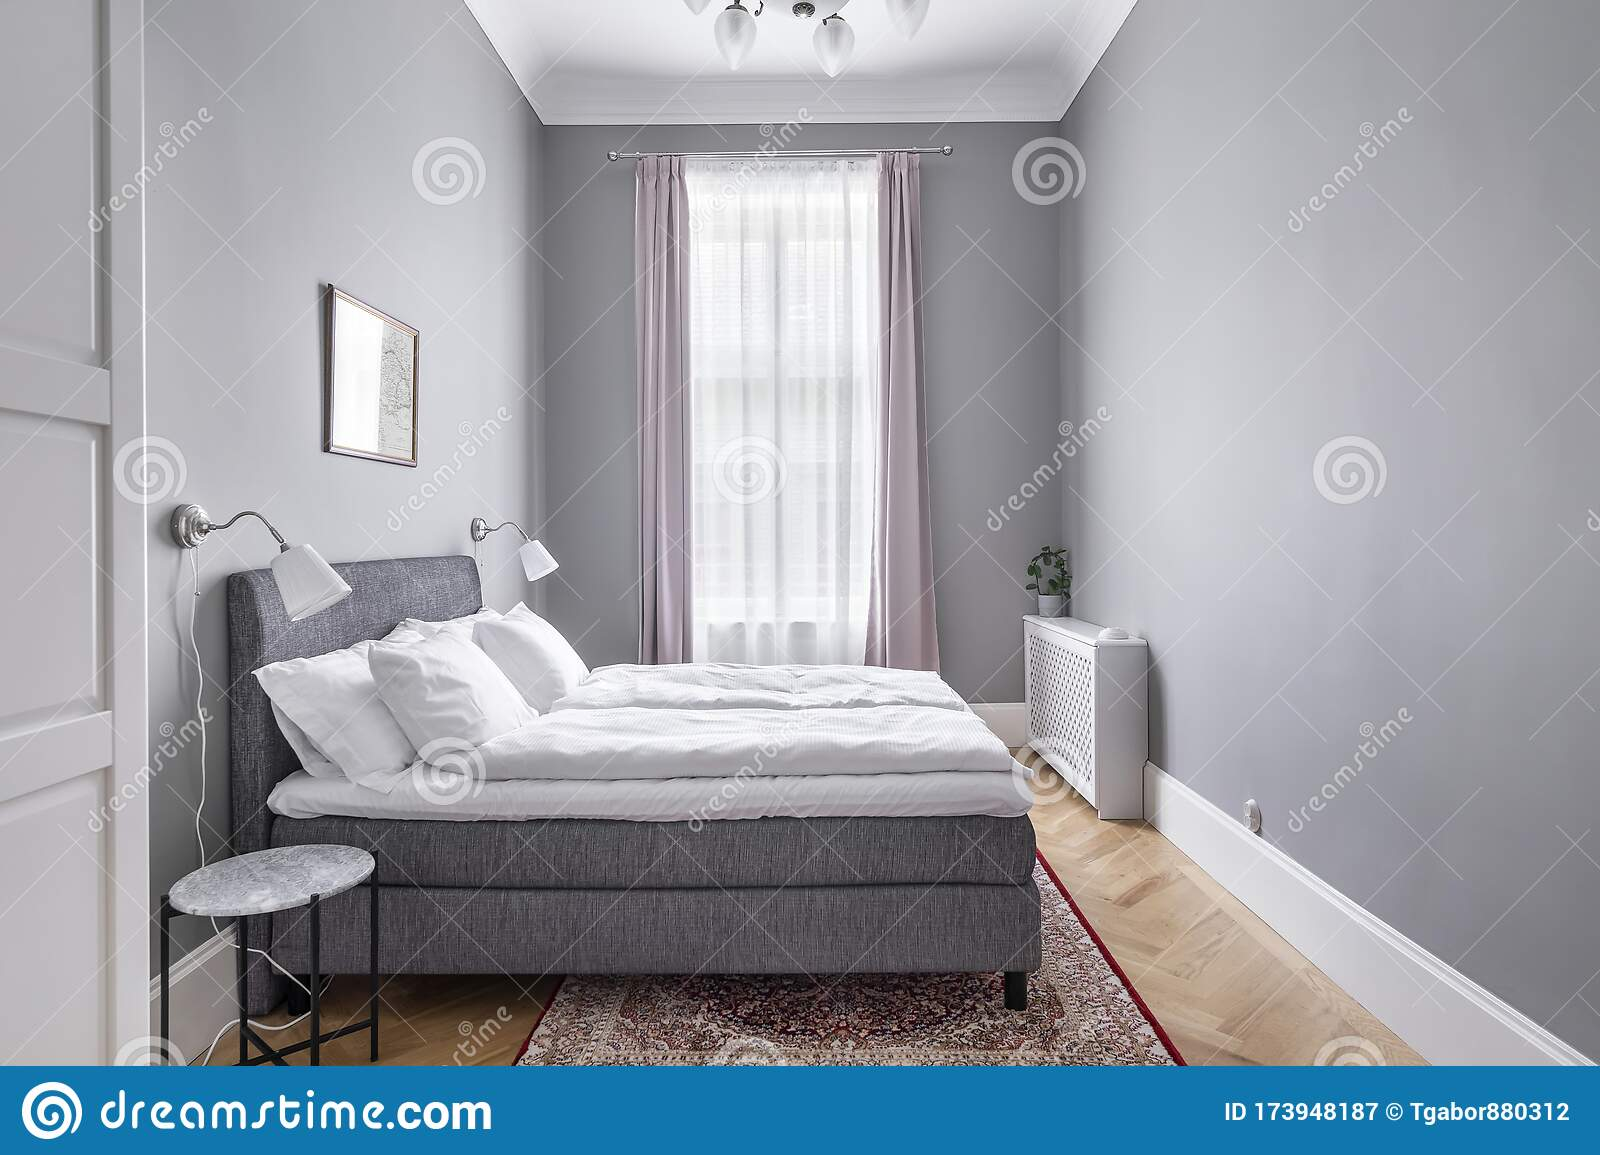 Budapest Hungary May 30 2019 Modern Minimal Grey Bedroom With Pastel Lilac Curtains And Red Persian Rug From Side View Editorial Photography Image Of Cosy Bedding 173948187